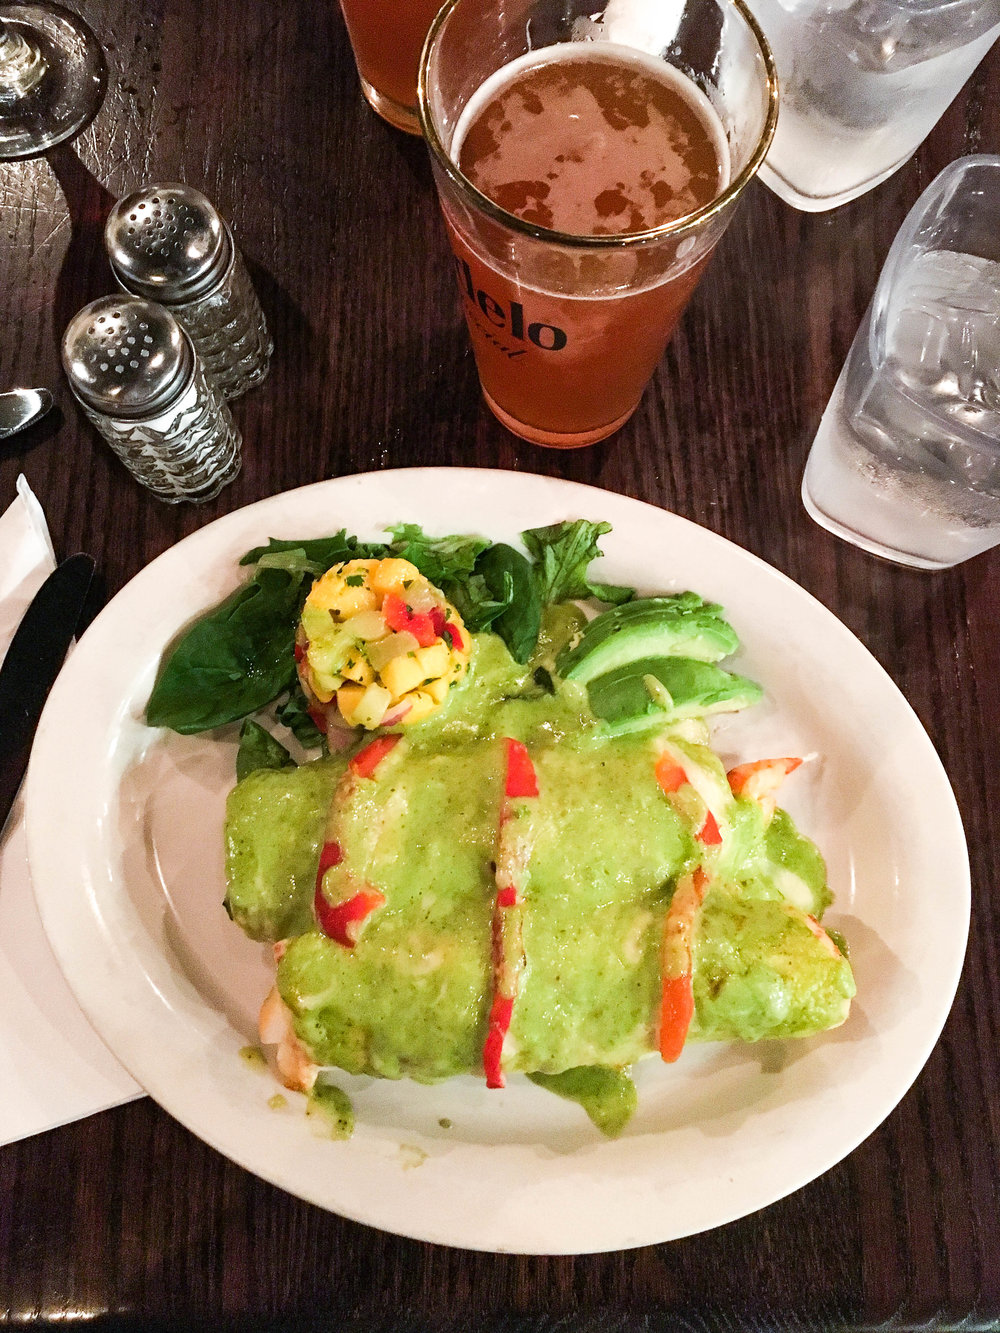 Lobster enchiladas from Lucky Fish Deli in Highland Park